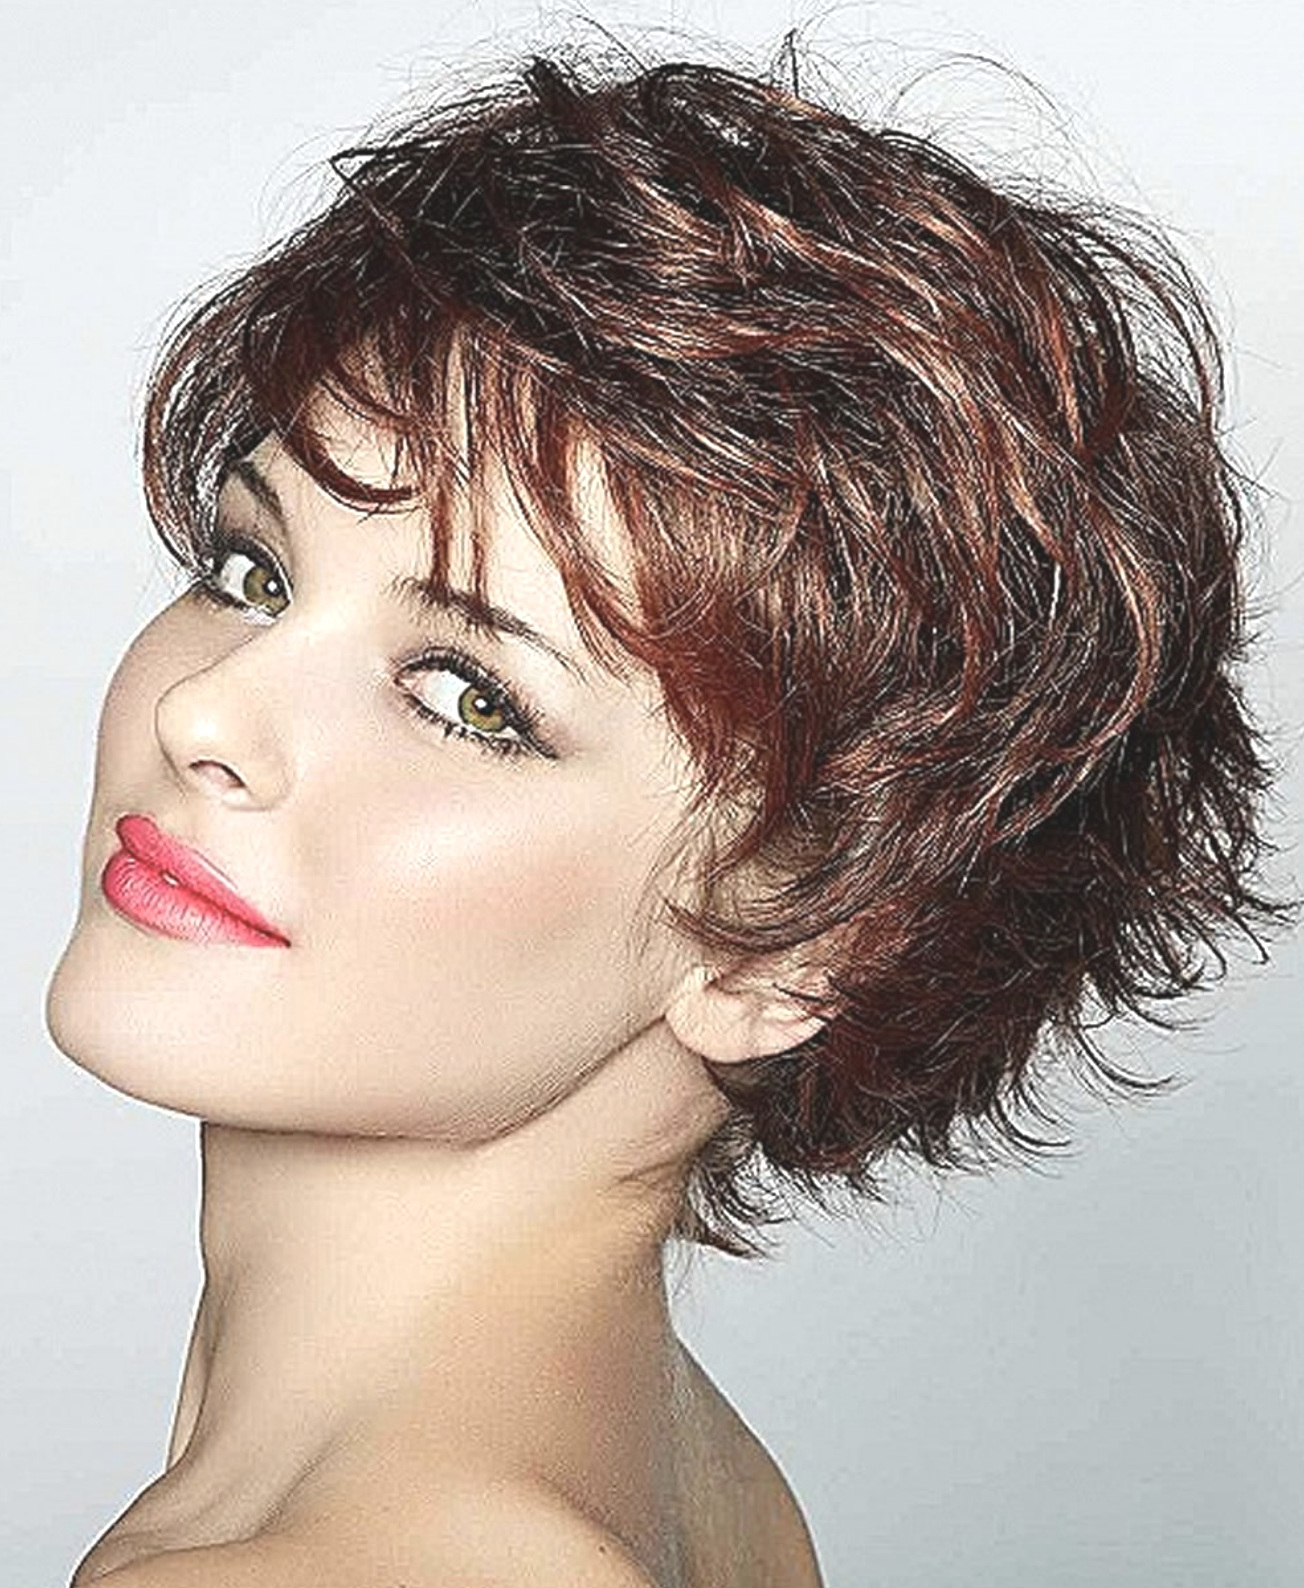 Hairstyles : Curly Short Hairstyles For Women Glamorous For Glamorous Pixie Hairstyles (View 14 of 20)